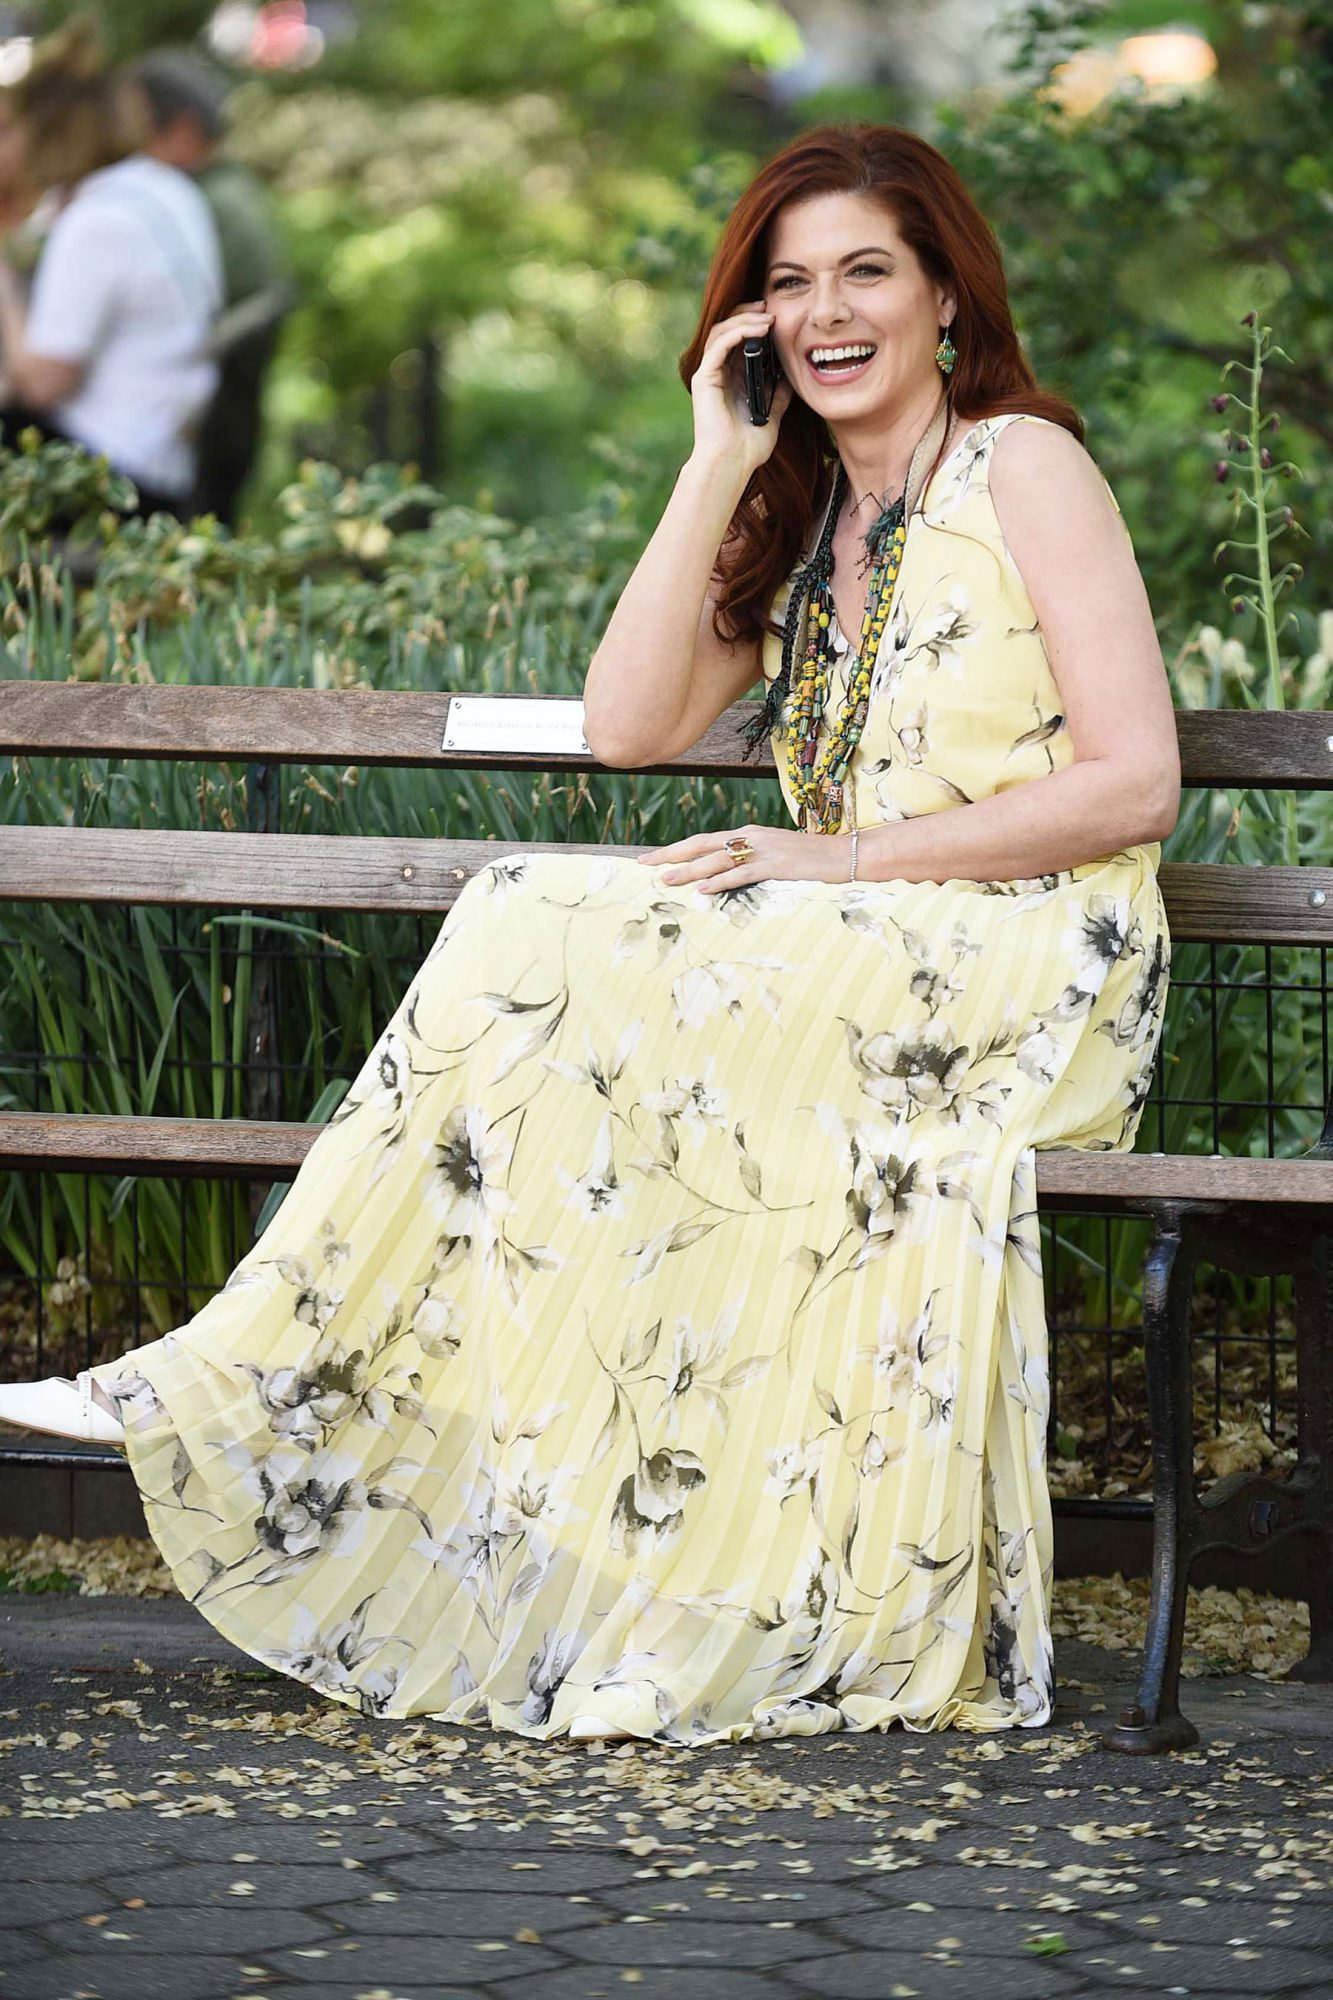 Debra Messing on her Phone in the Park